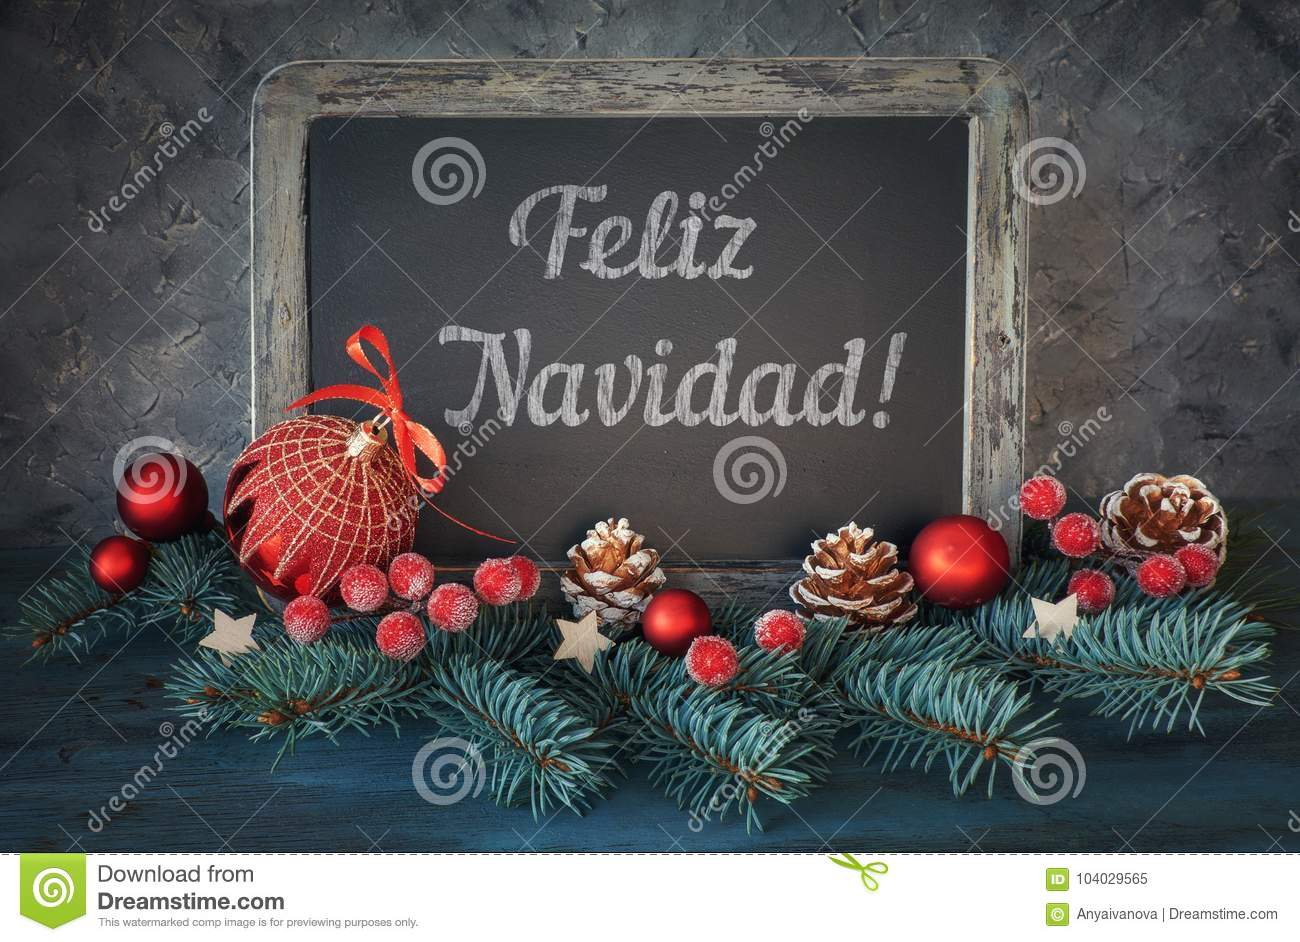 Christmas Wishes In Spanish.Decorated Blackboard With Christmas Greeting In Spanish On